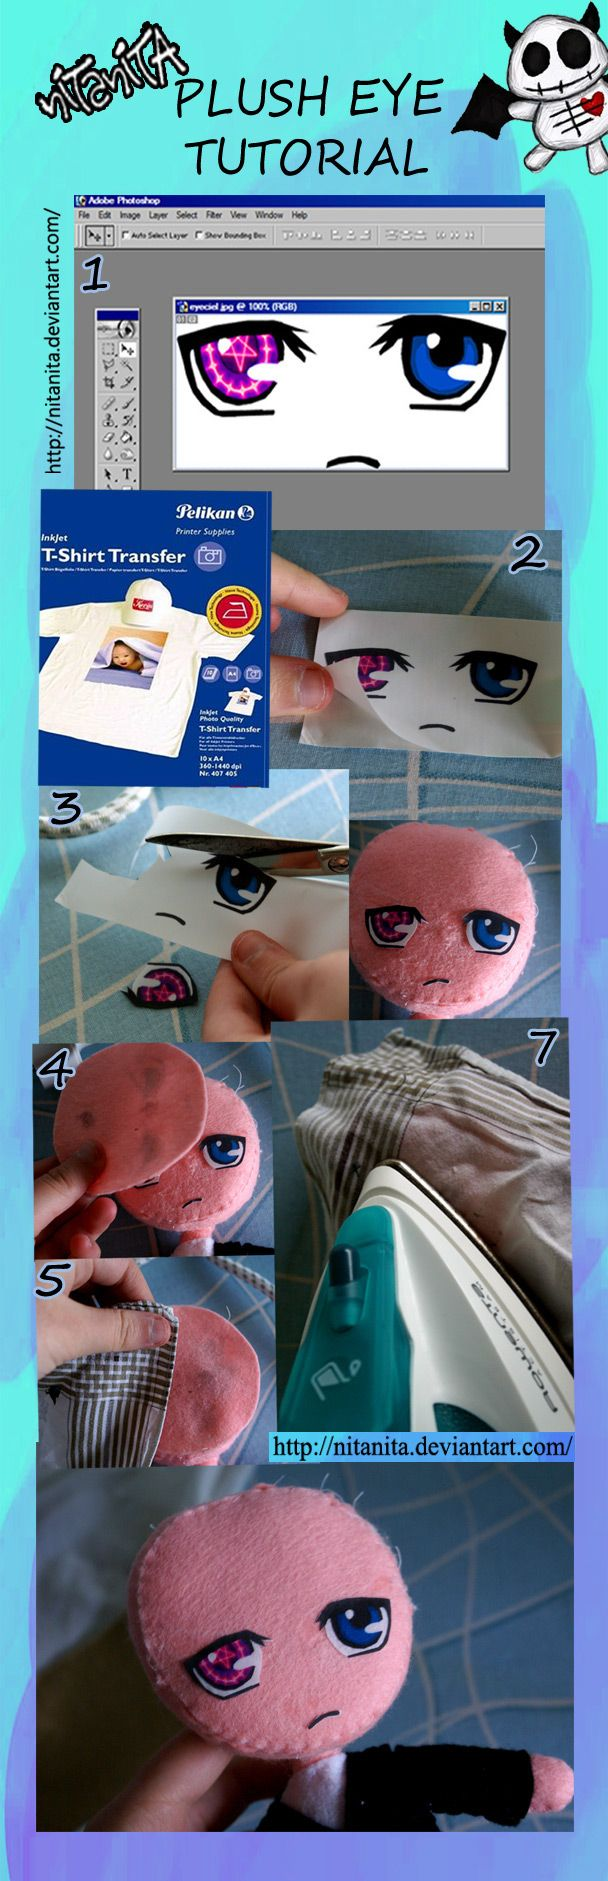 Plush Eye Tutorial By Nitanitaiantart On @deviantart